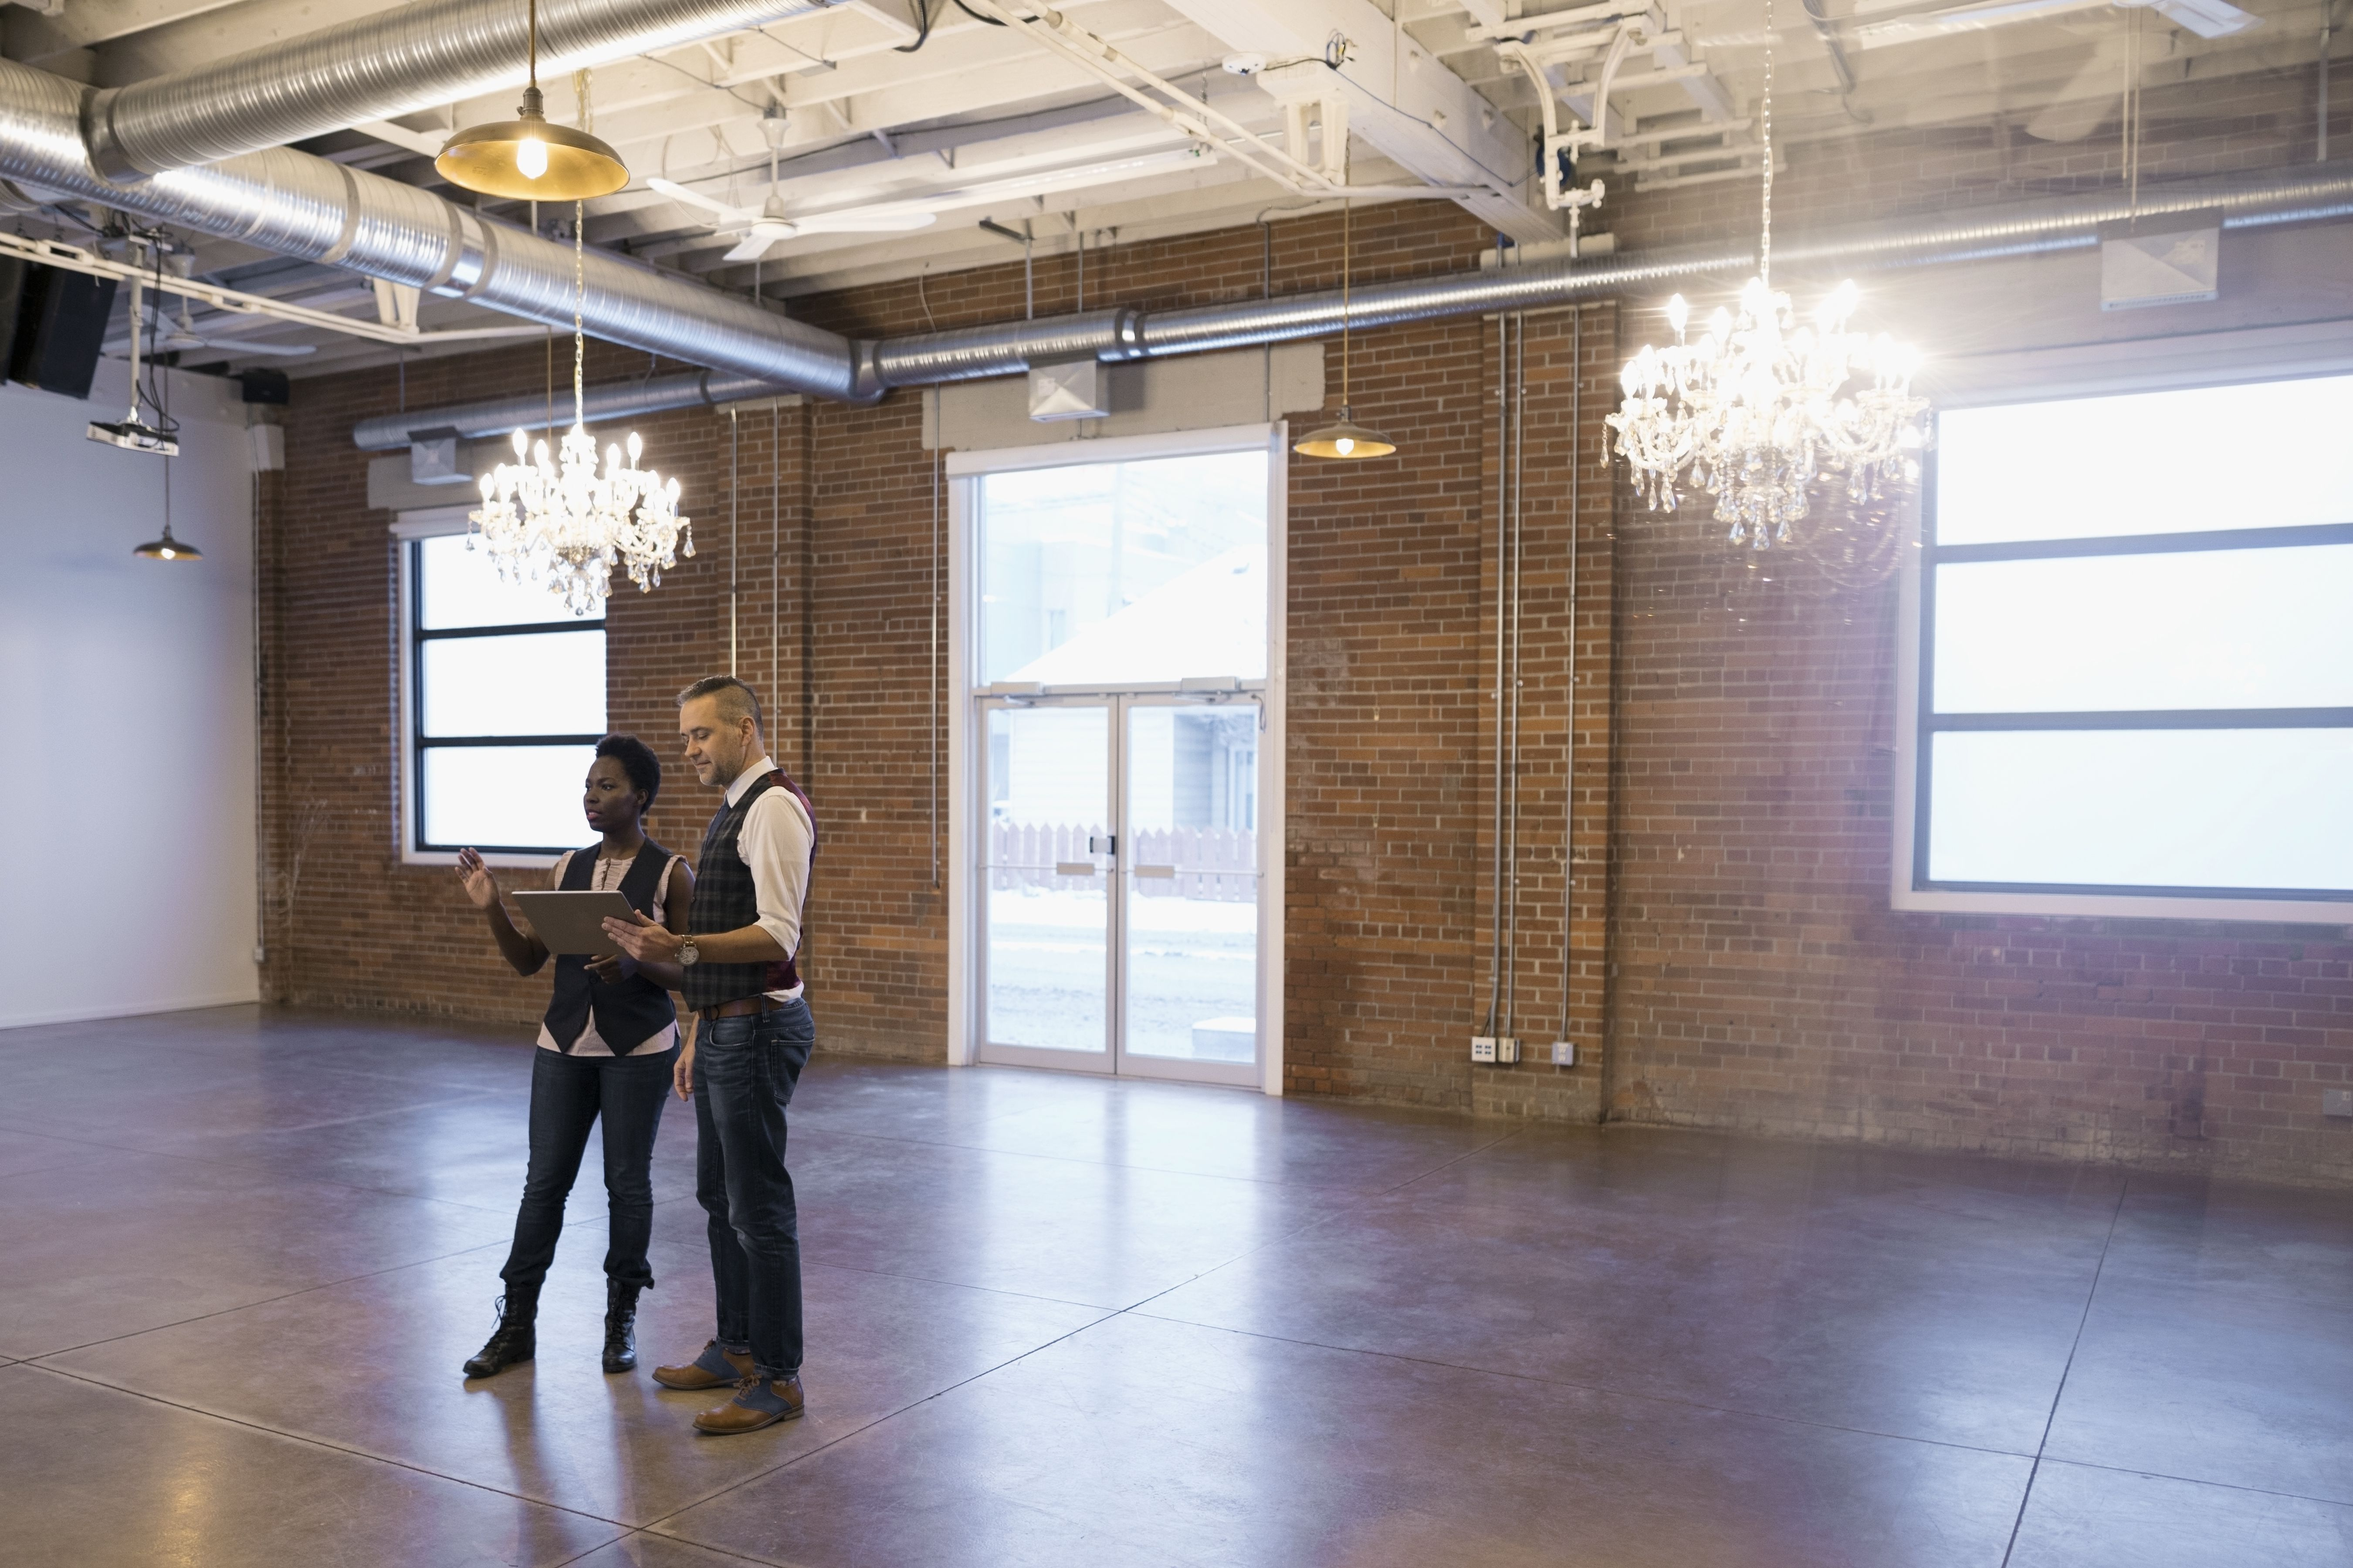 Event planners surveying an event space